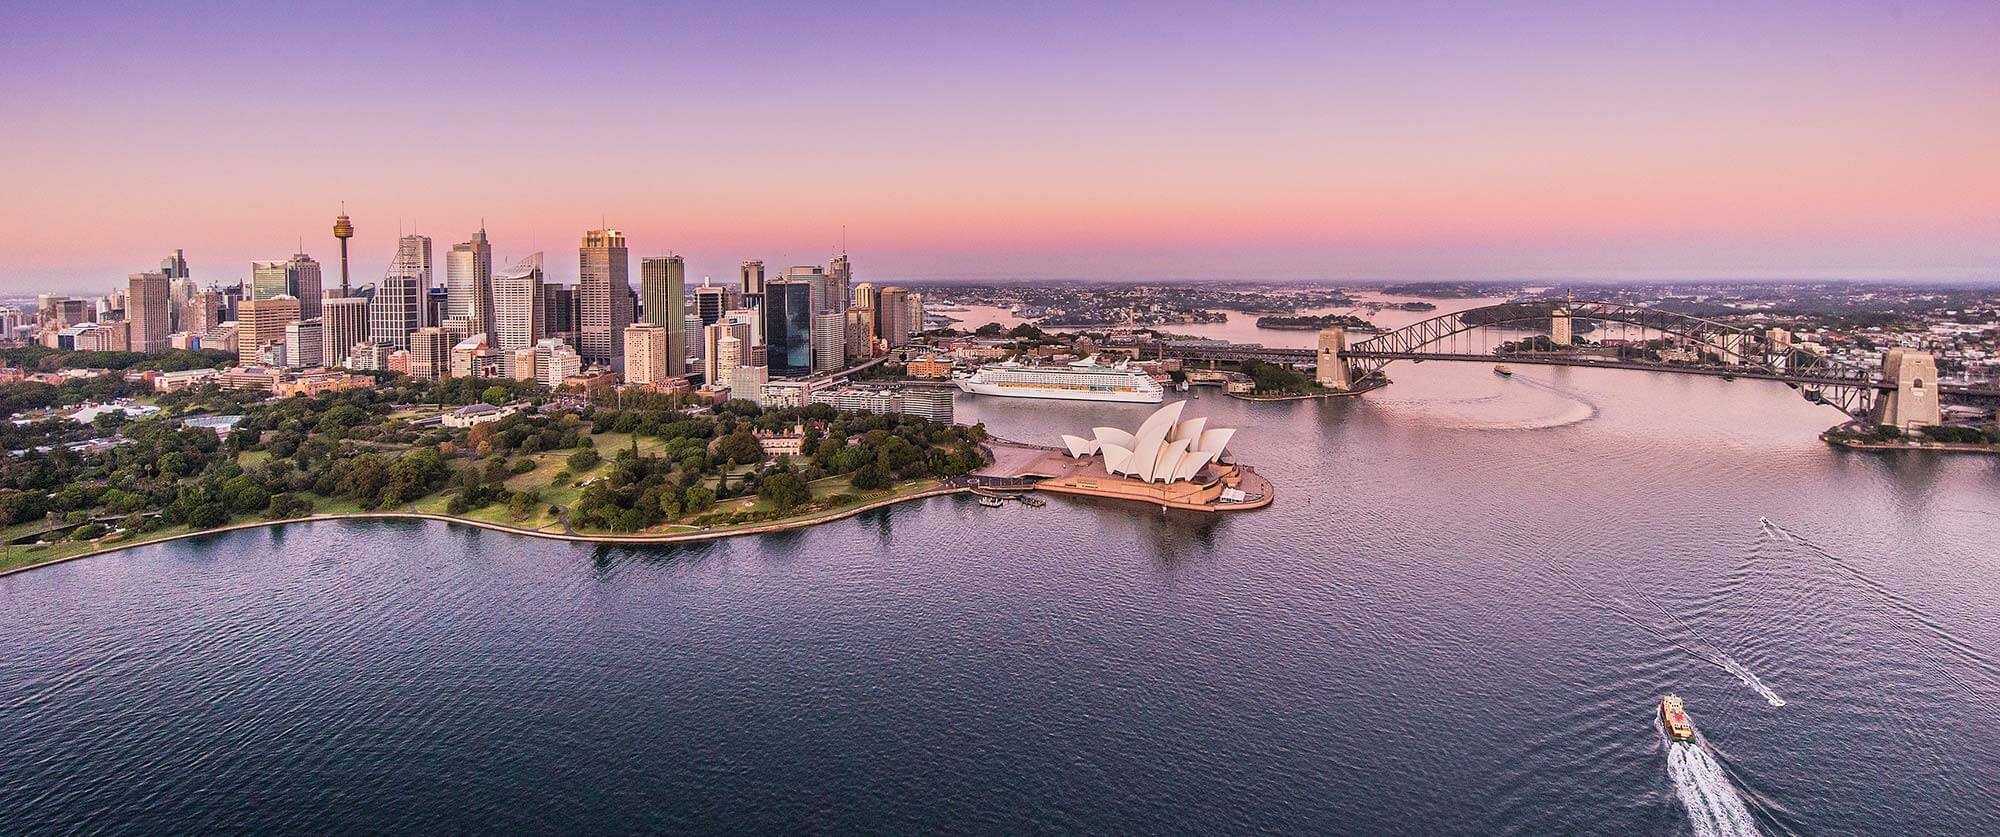 Sydney Skyline at Sunrise - South Pacific Vacations - Best Australia Vacation Packages